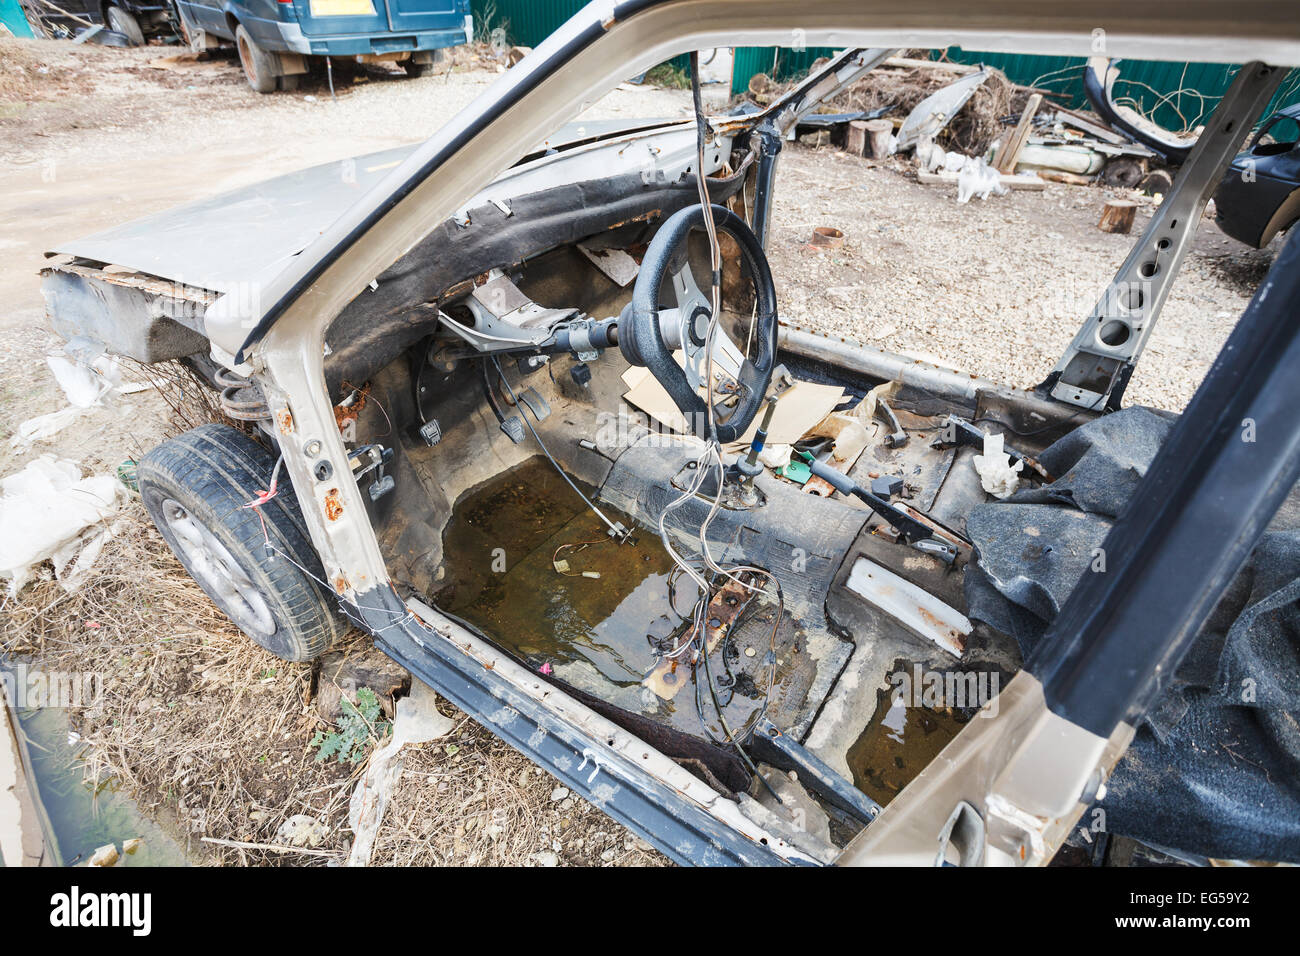 old disassembled car at an automobile country yard - Stock Image